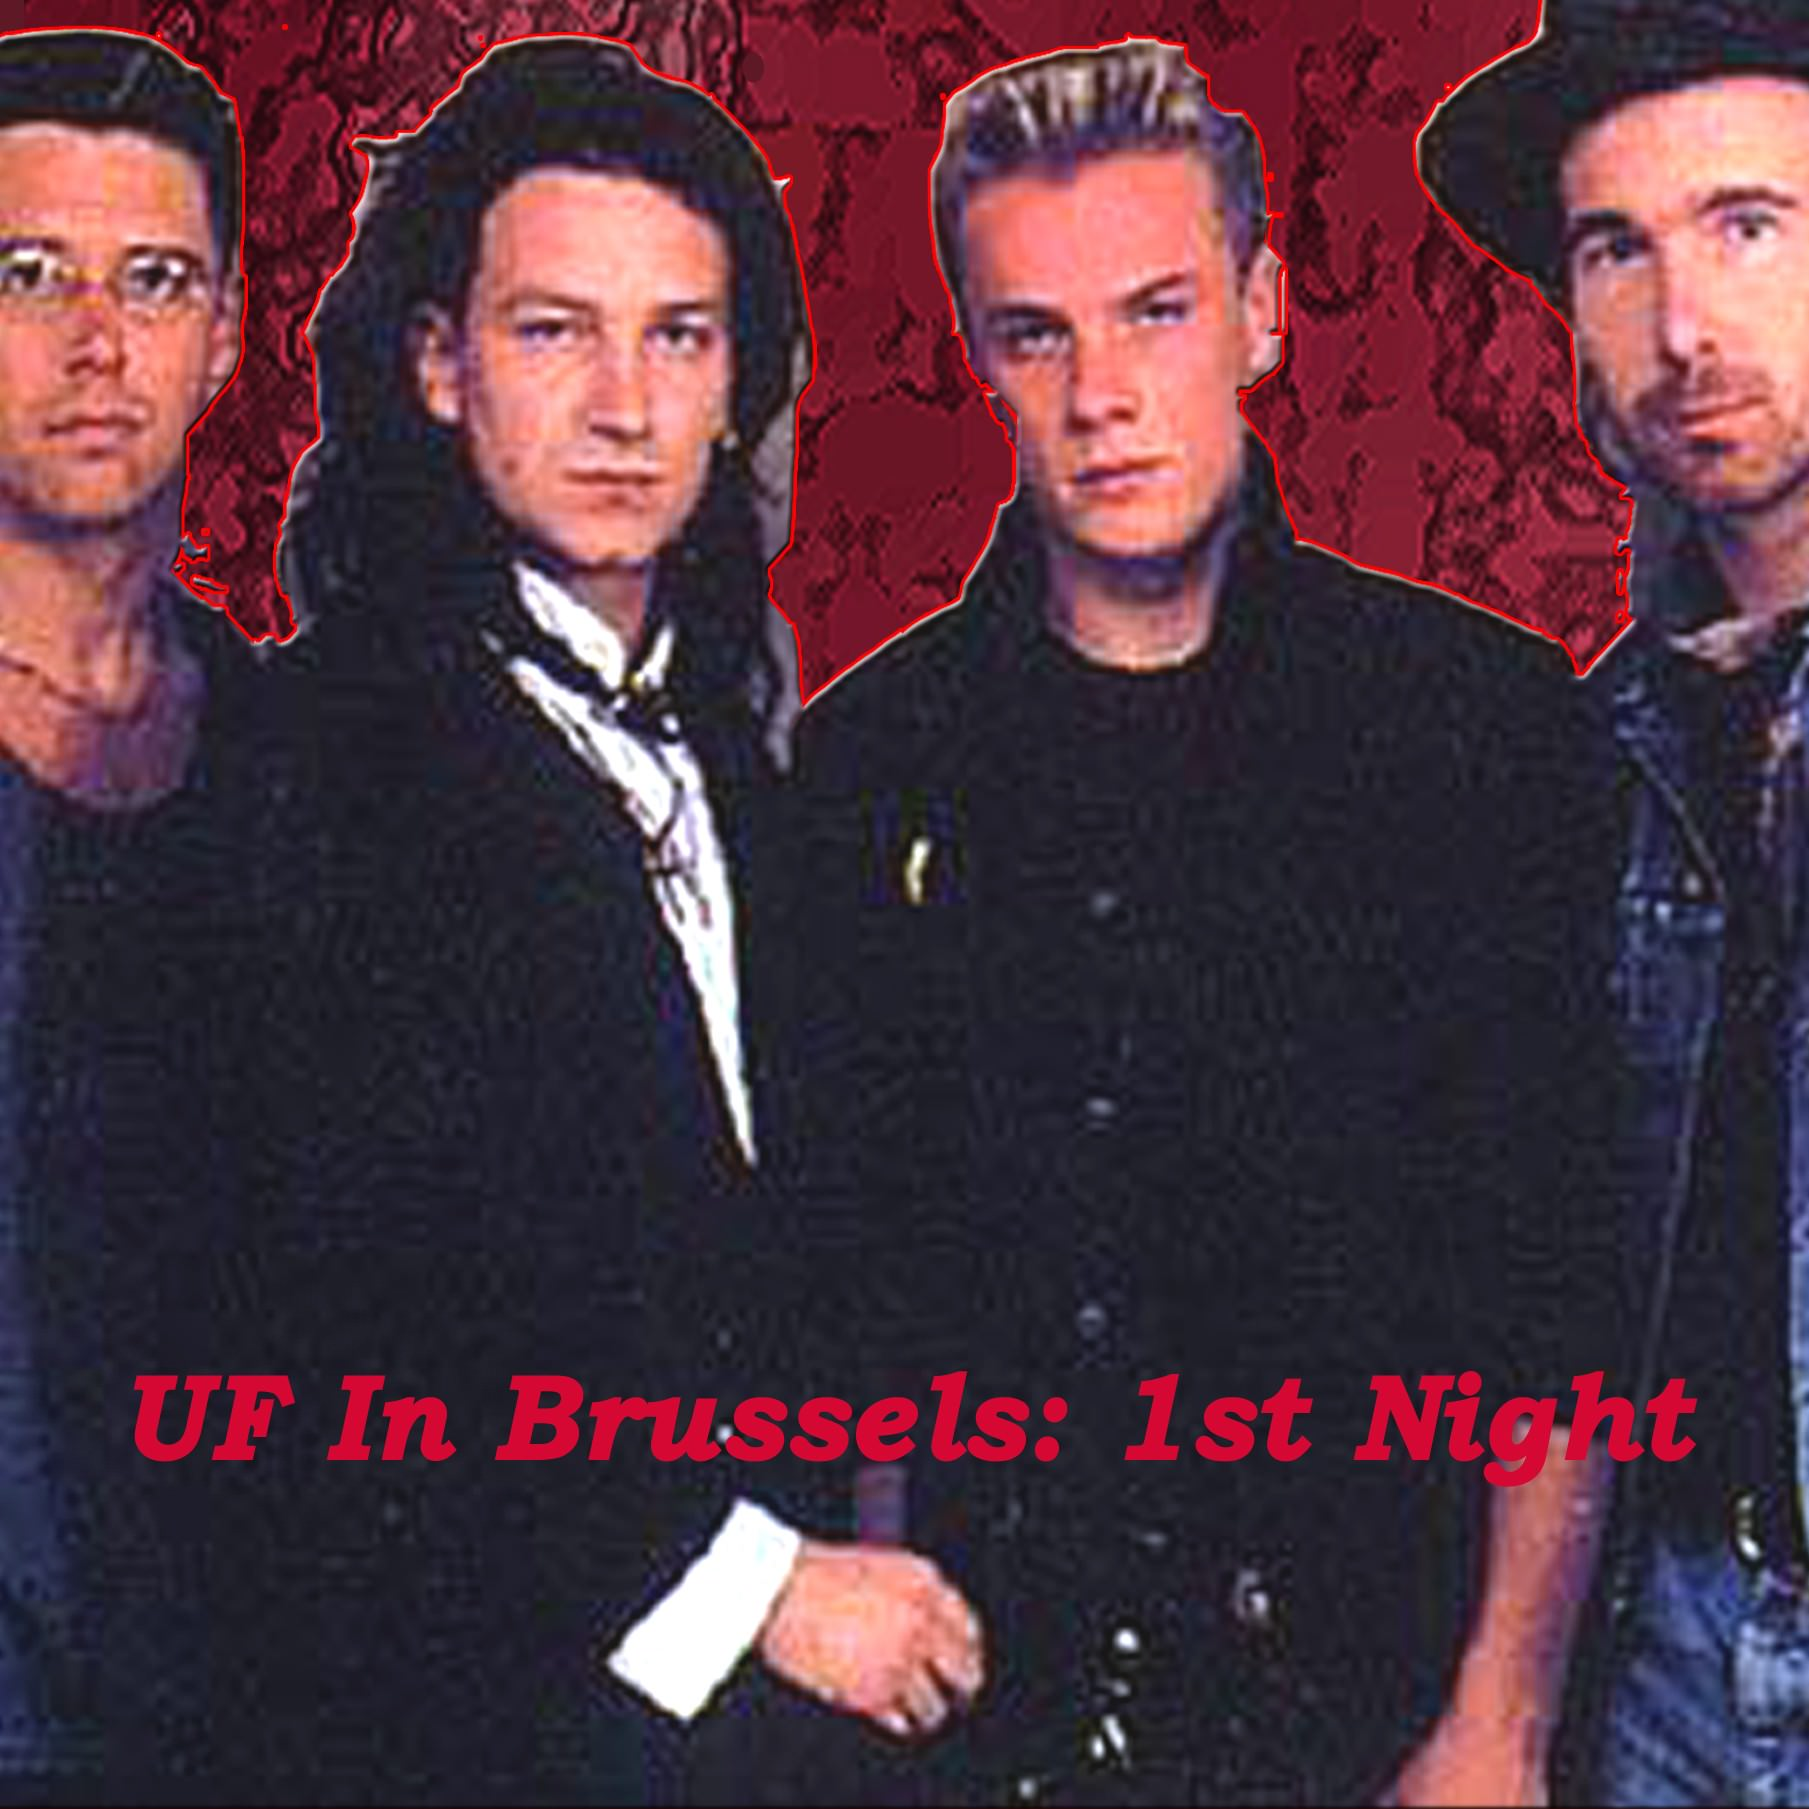 U2gigs com cover » Audio » 1984-1985 - The Unforgettable